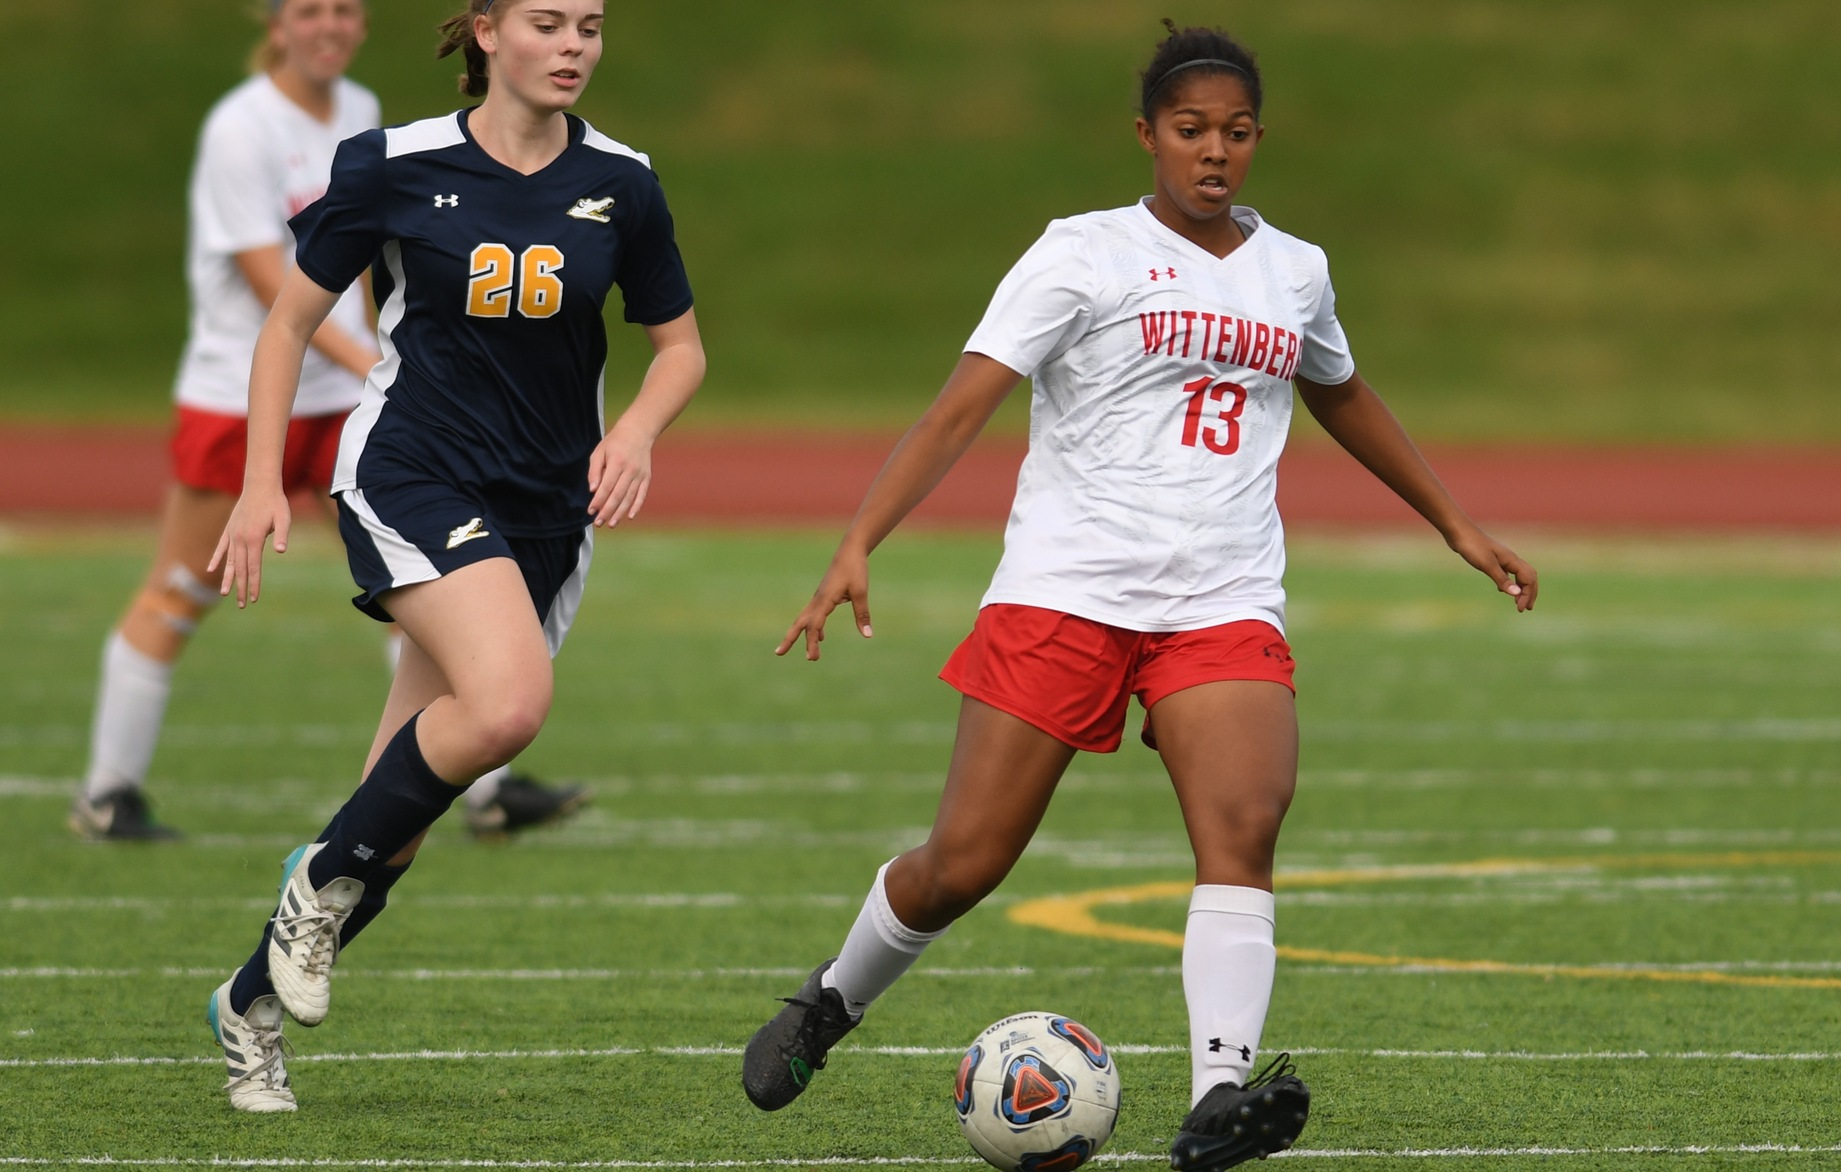 Sophomore Jasmine Evans recorded her first assist of the season in the Tigers' 3-1 home loss against Hanover